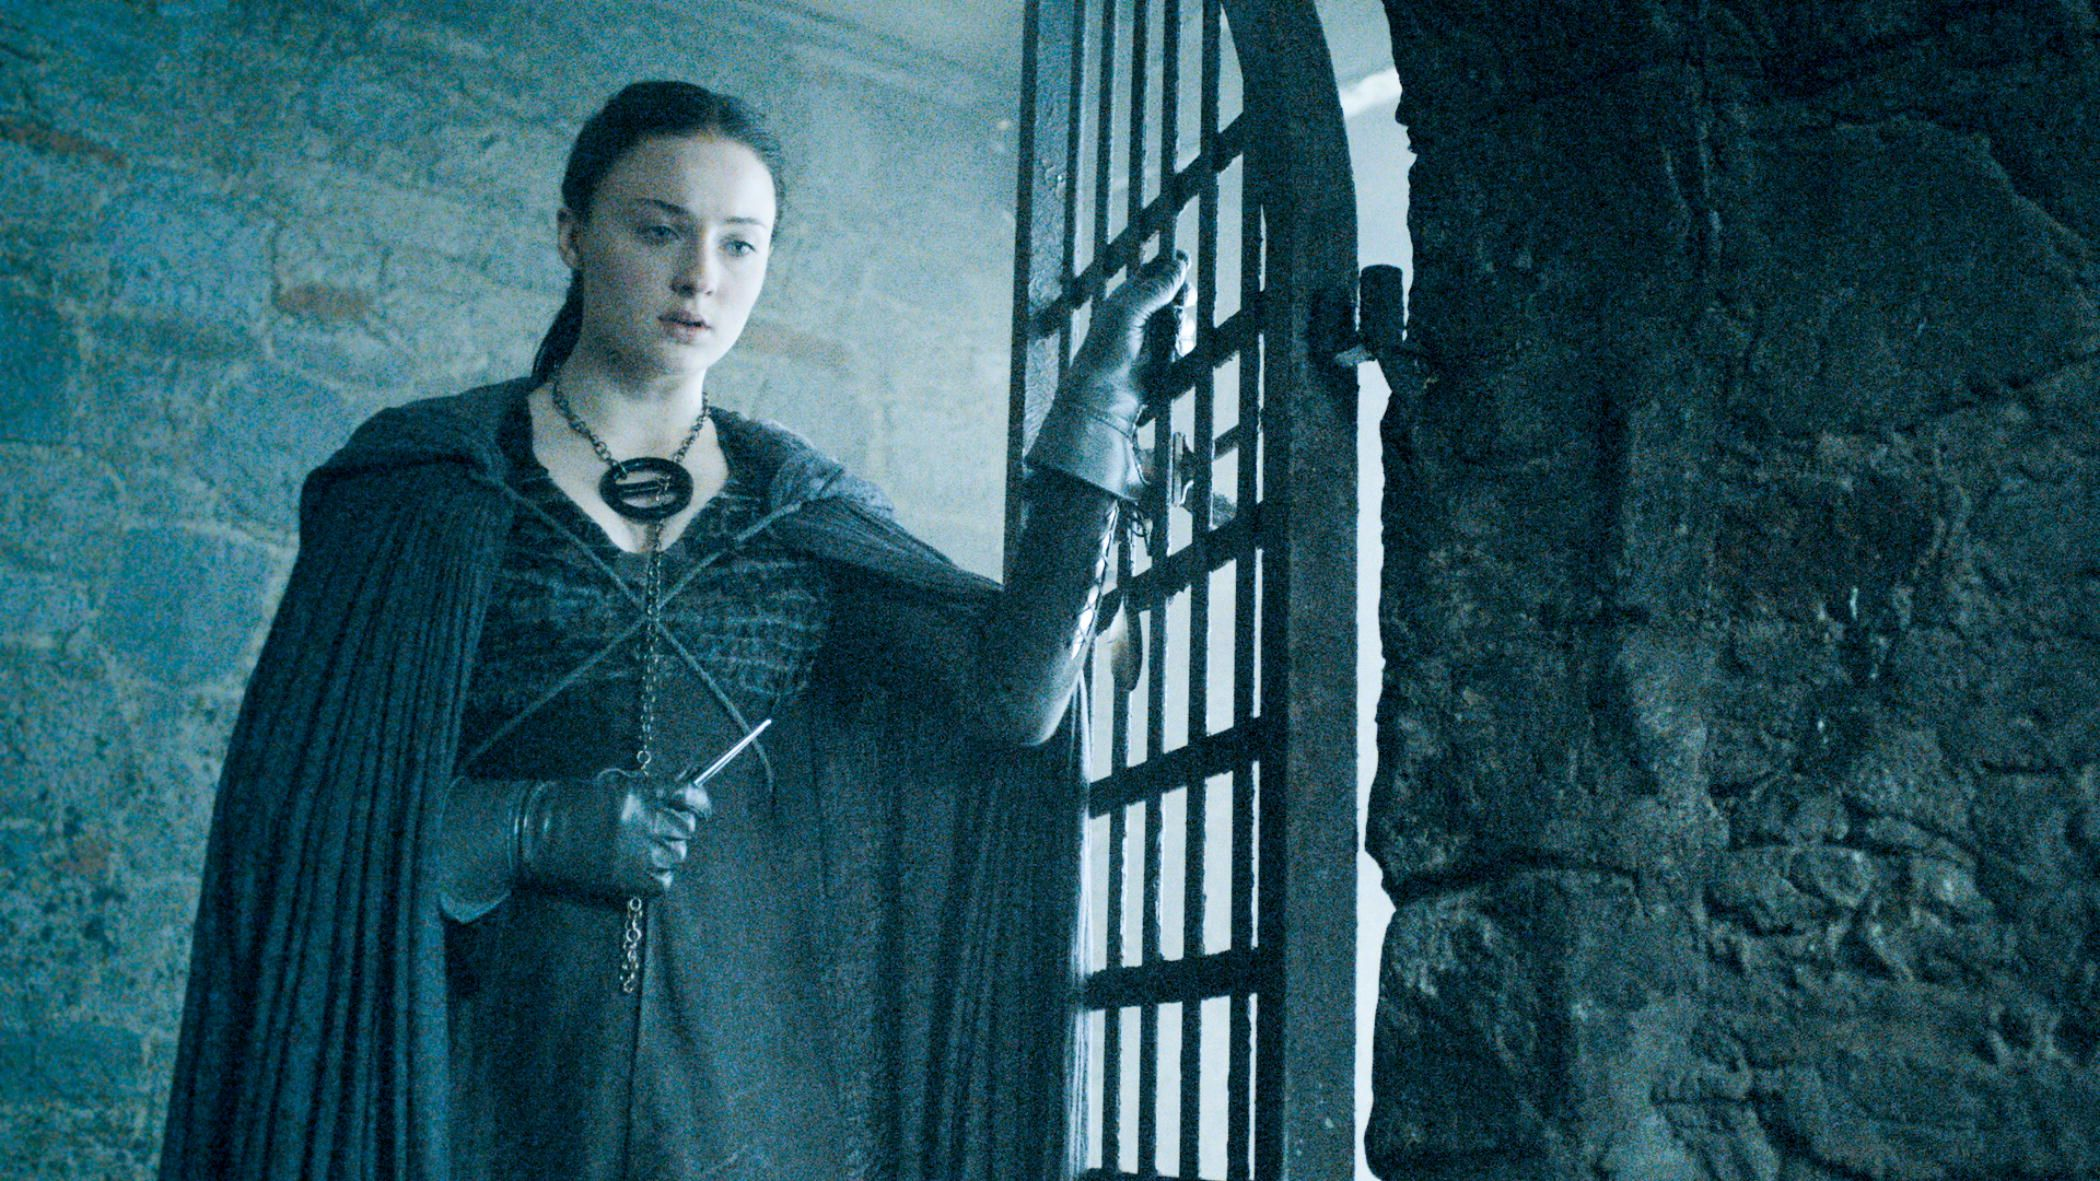 Game of Thrones Season 5 - Lady Sansa, oh I hope she gets a chance to use that daggar!